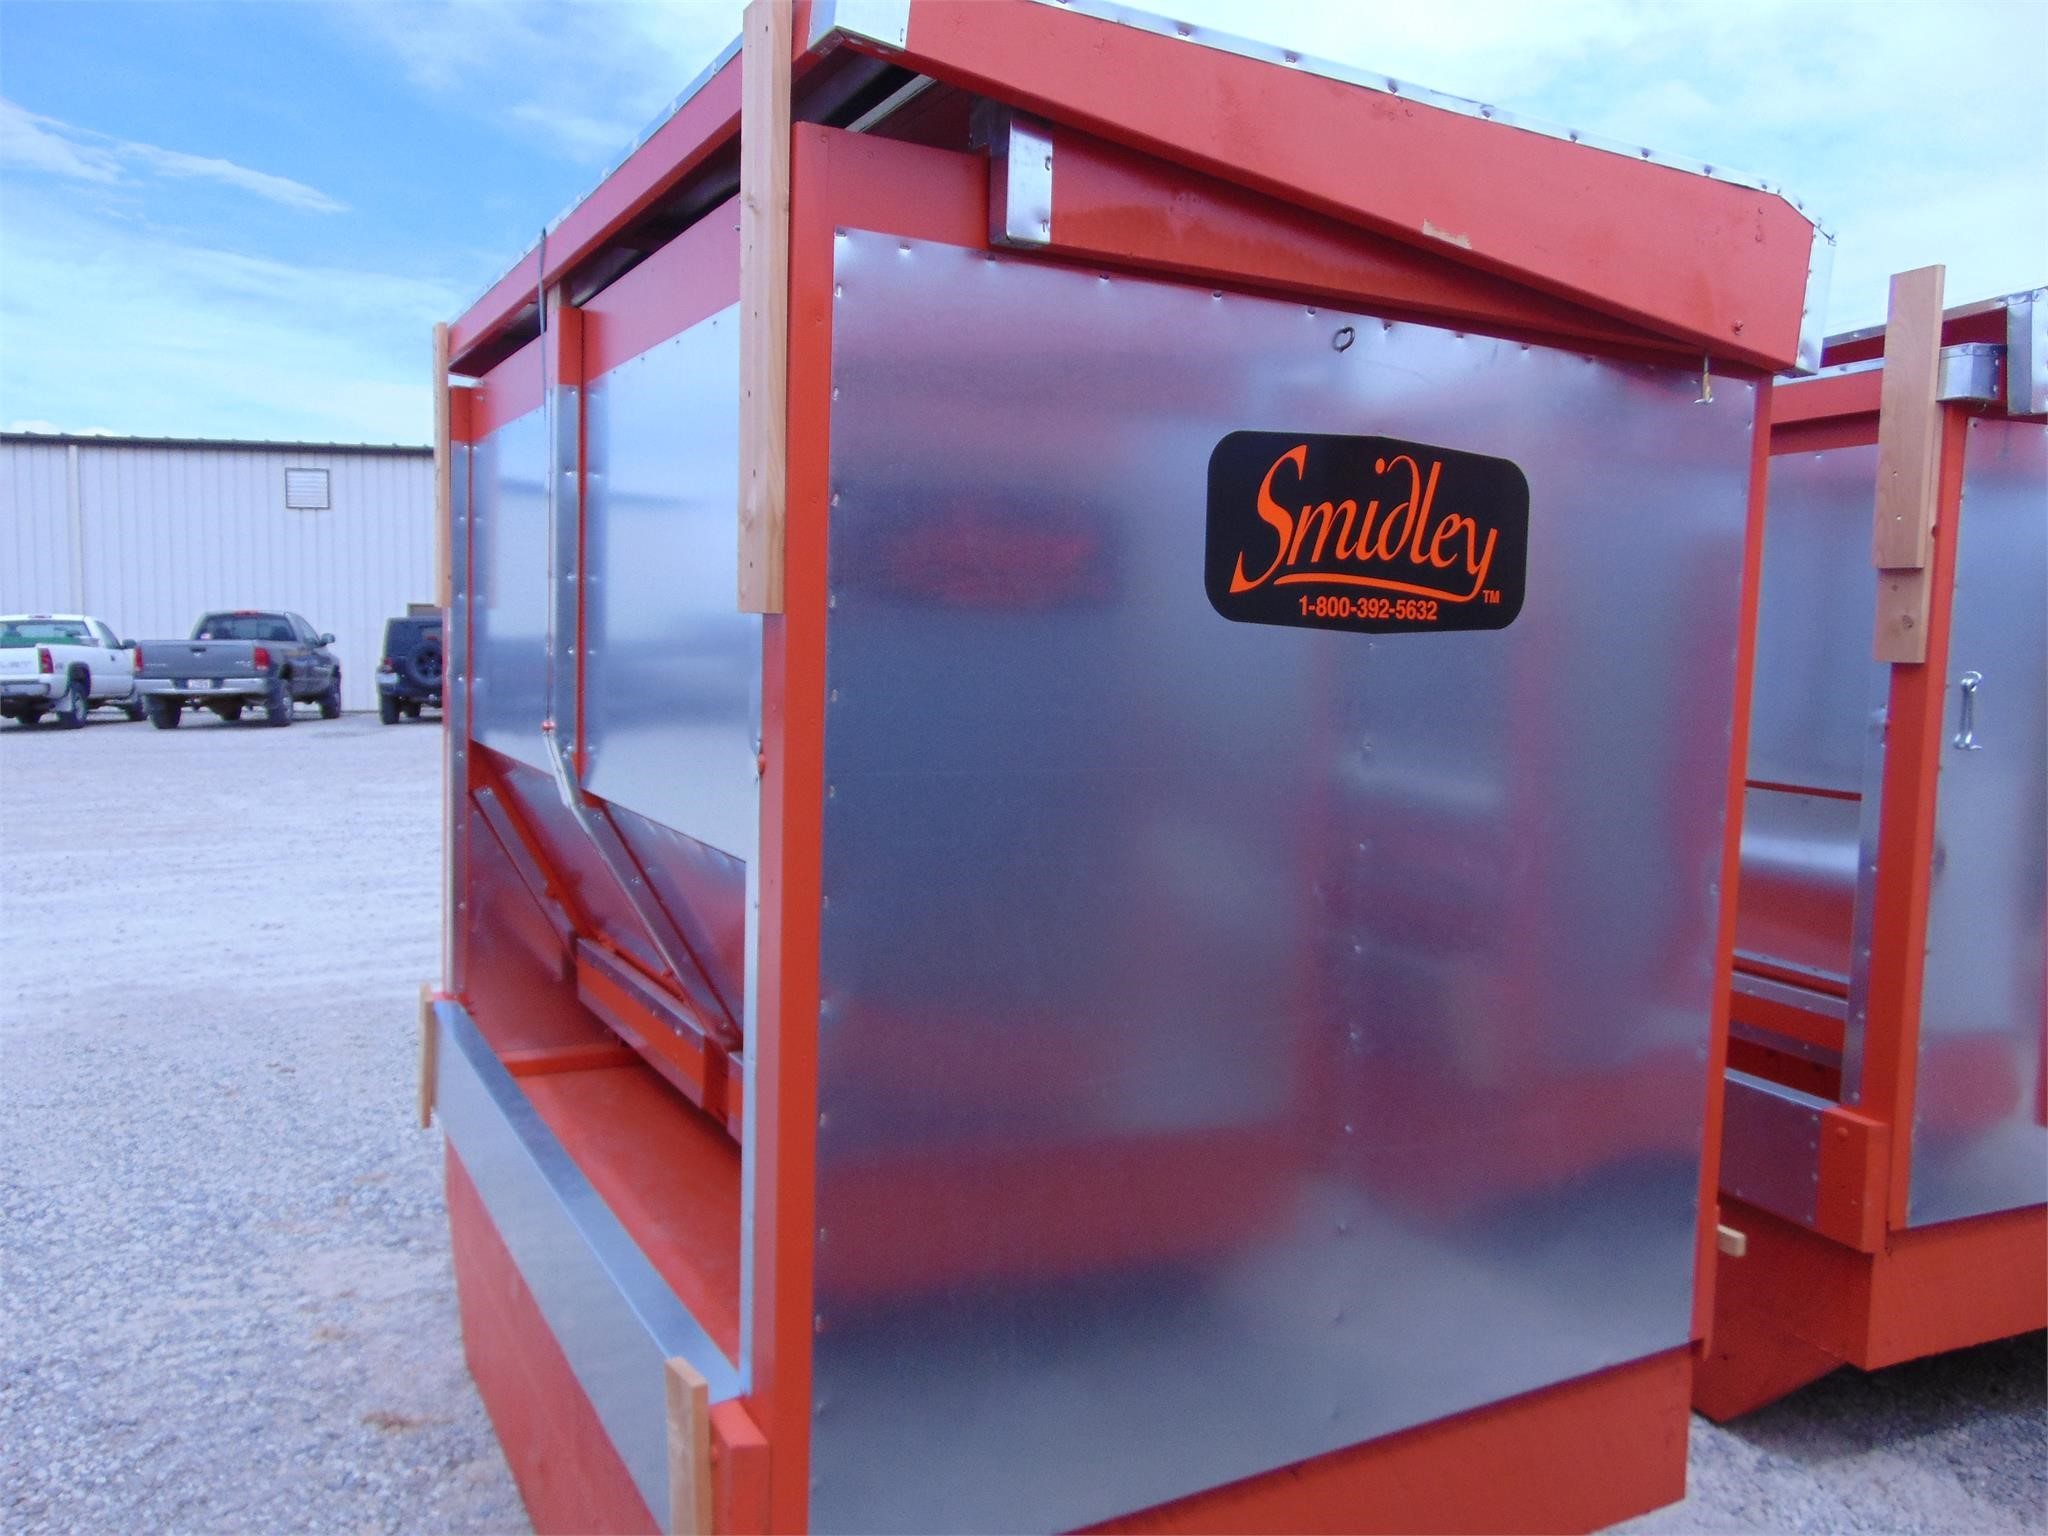 2020 Smidley 572100 Cattle Equipment